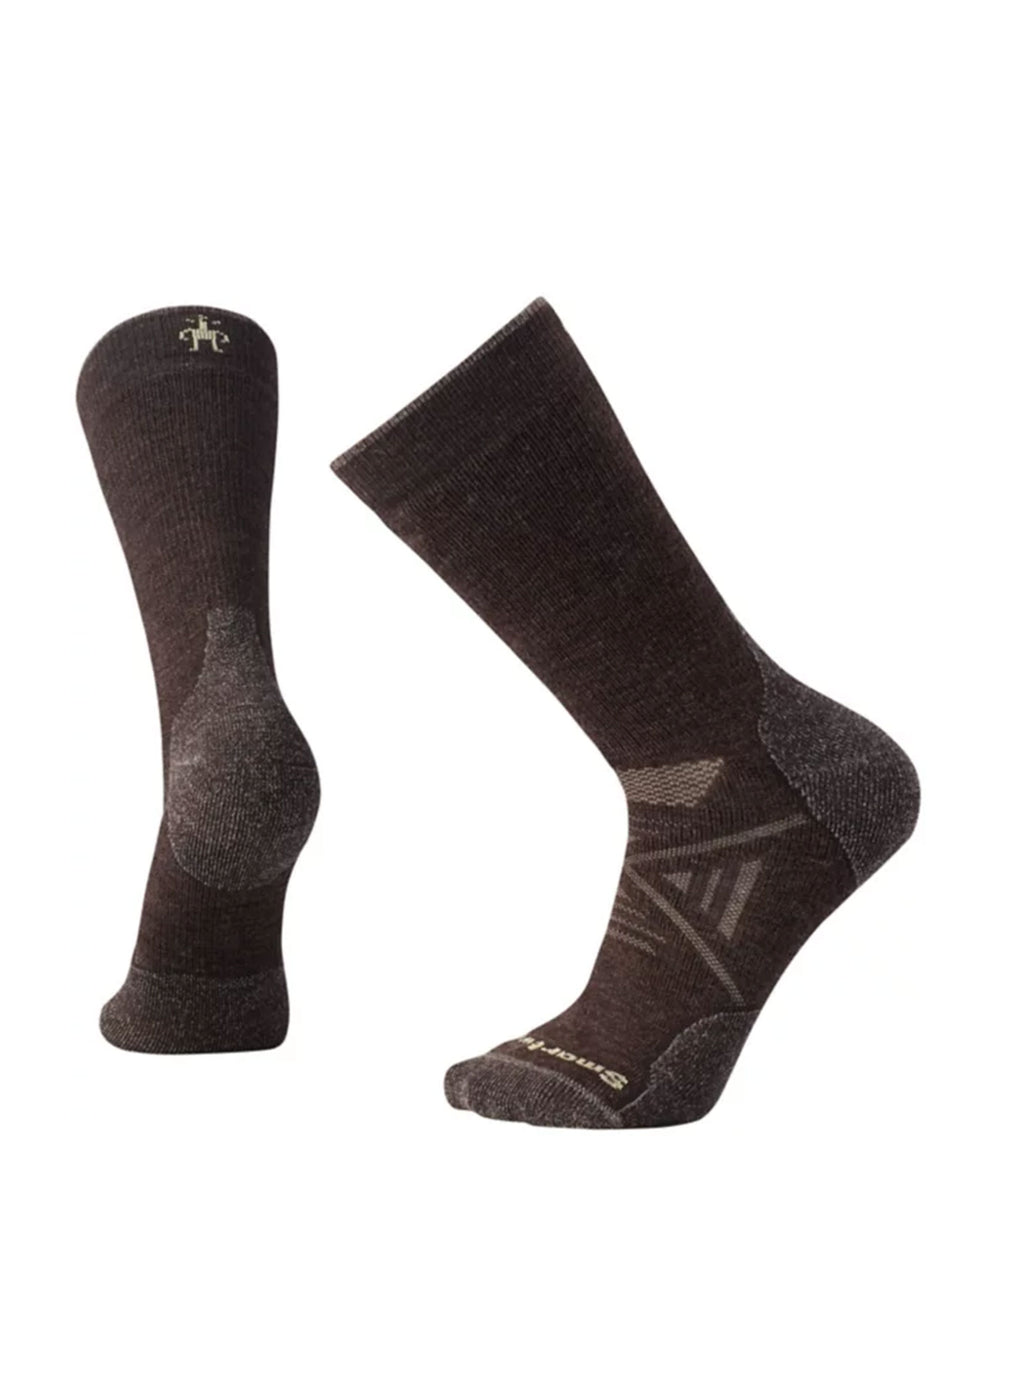 Smartwool PhD Outdoor Medium Crew Socks - Unisex